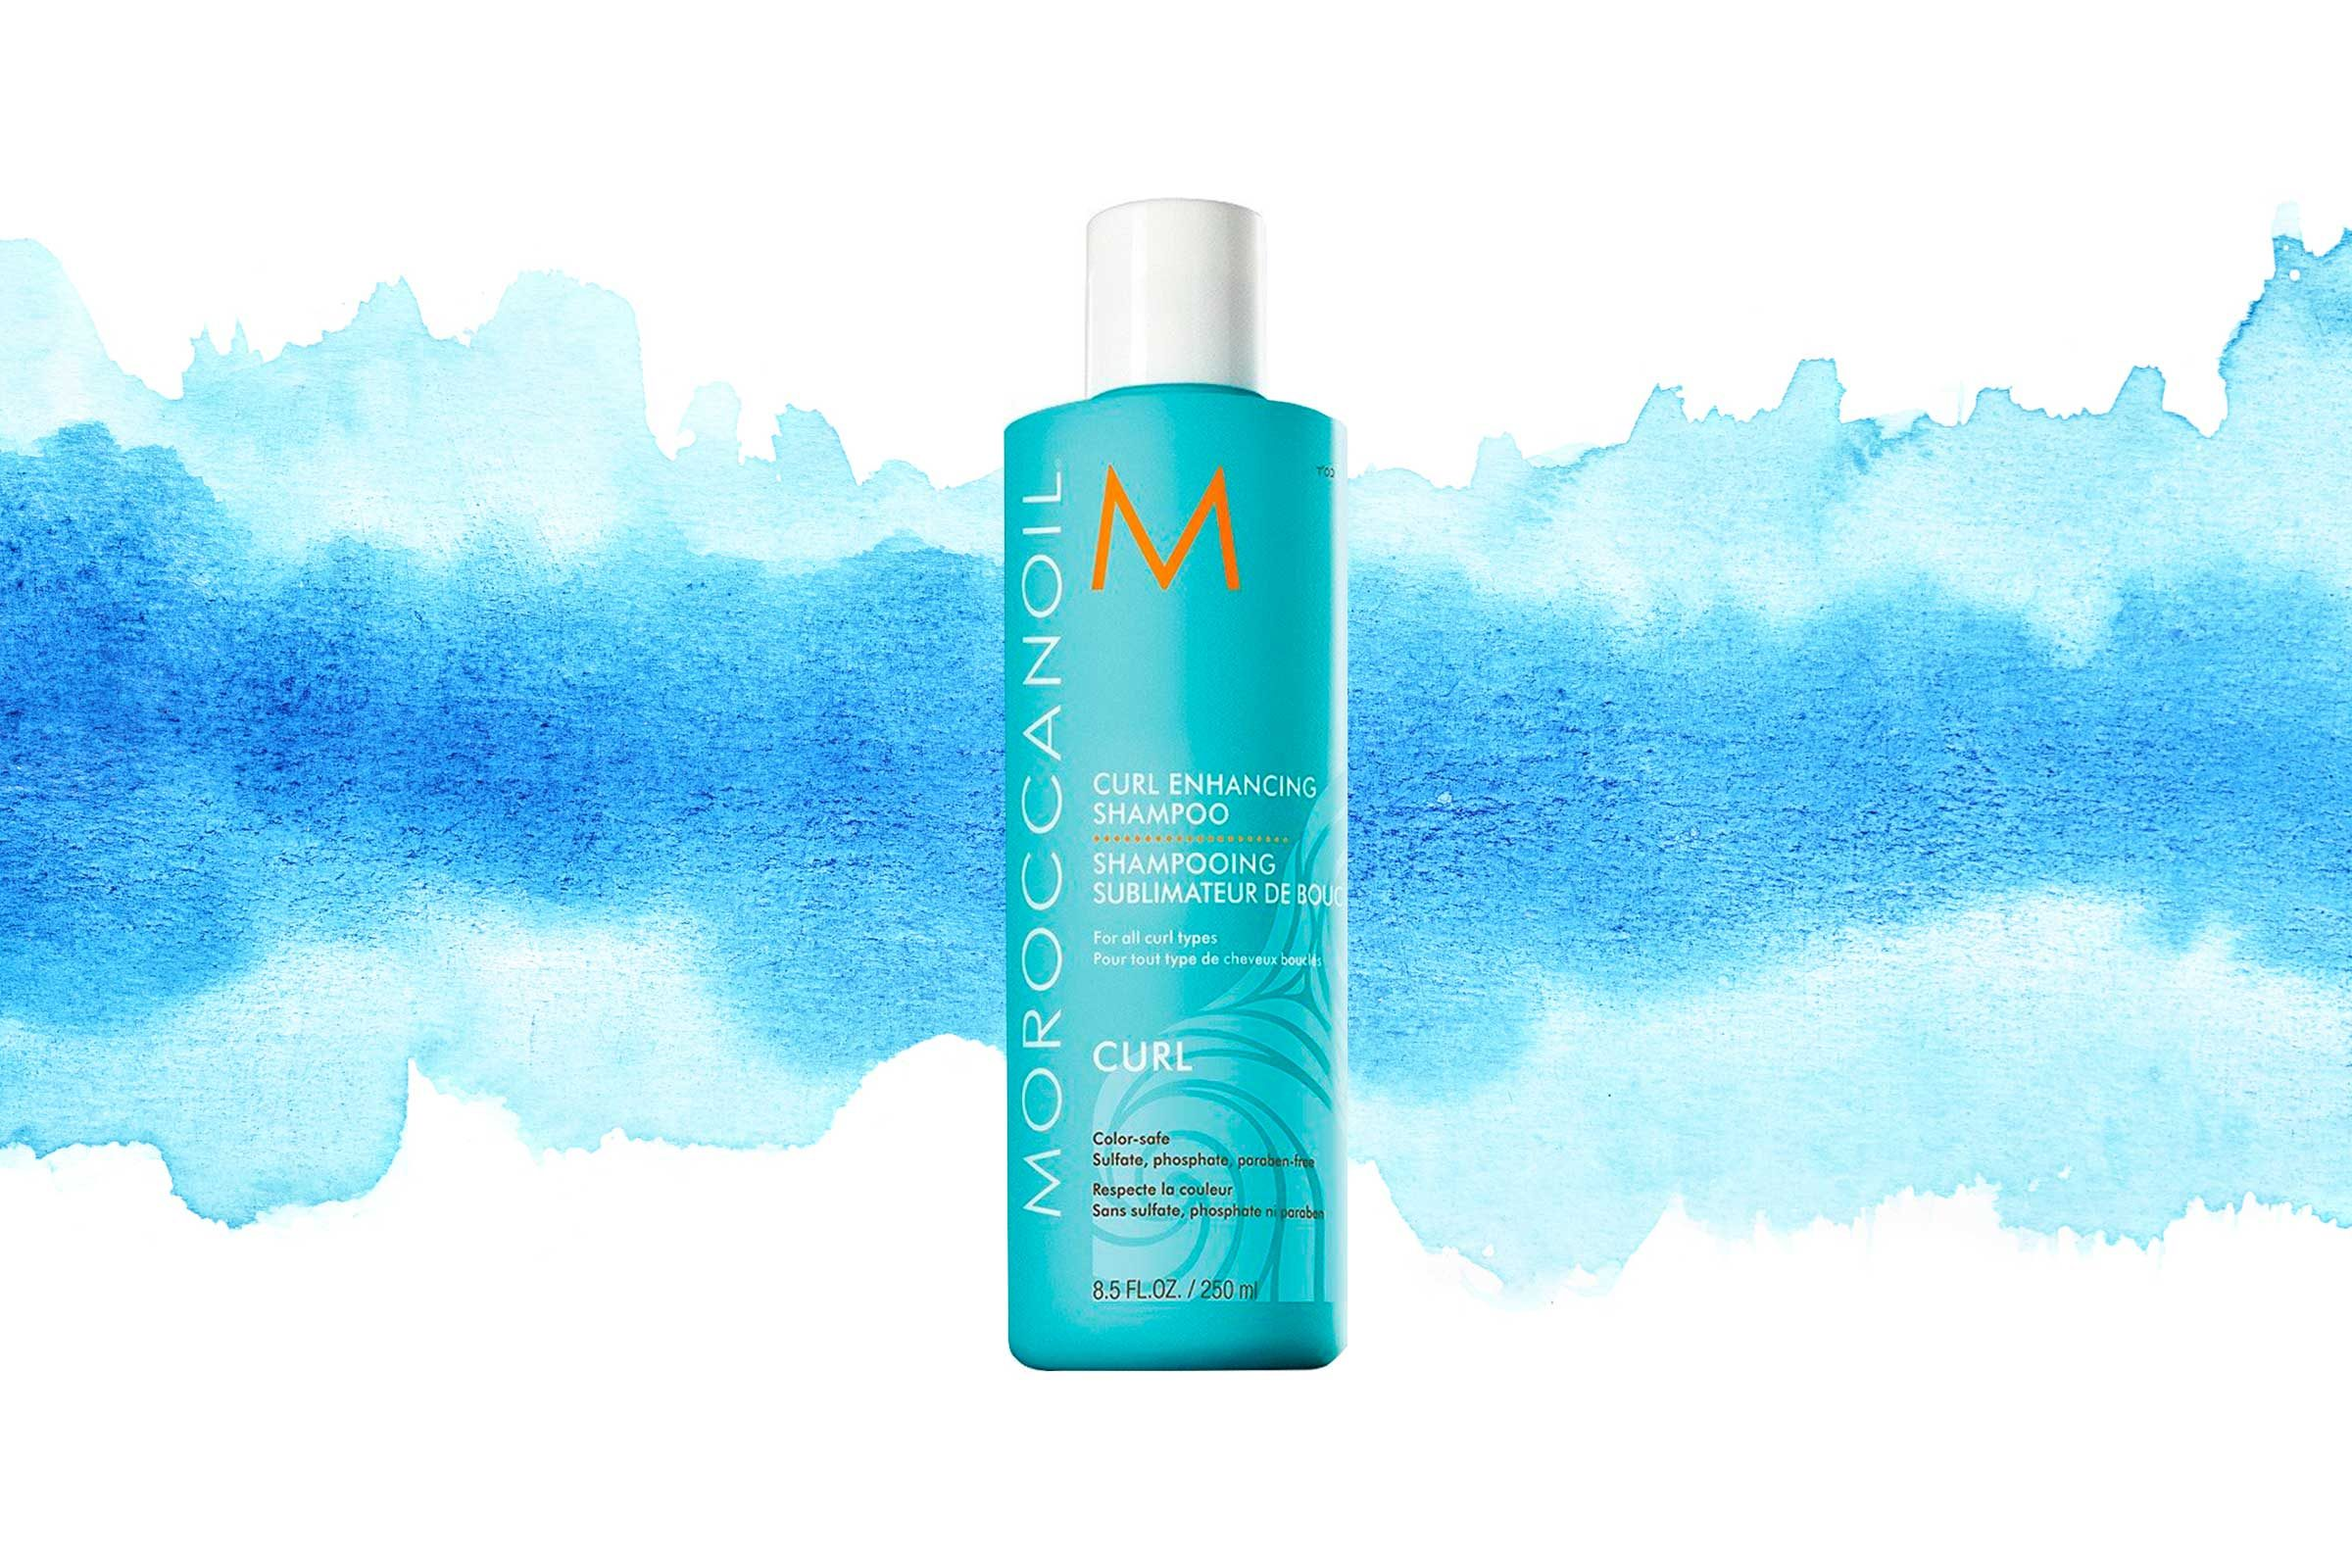 Best Shampoo For Your Hair Type Readers Digest - Best hair products for curly hair